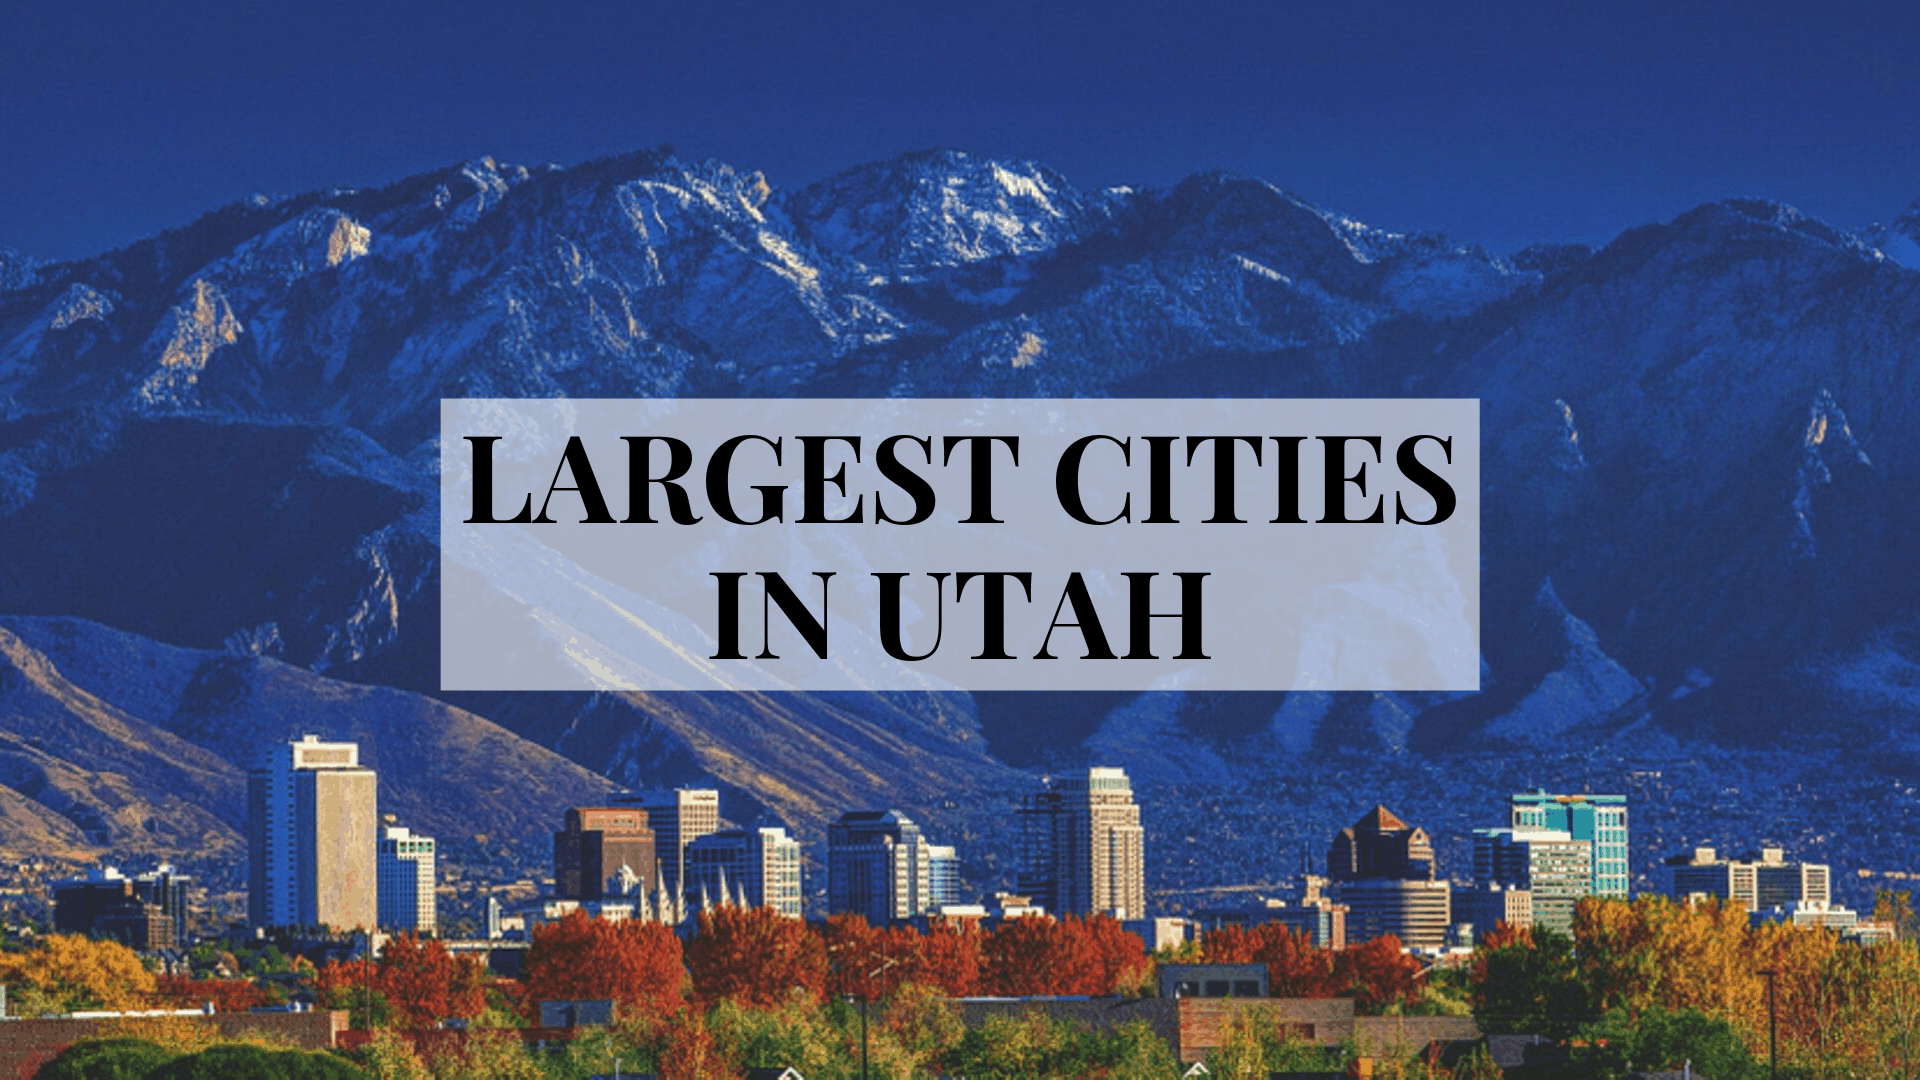 Largest Cities in Utah